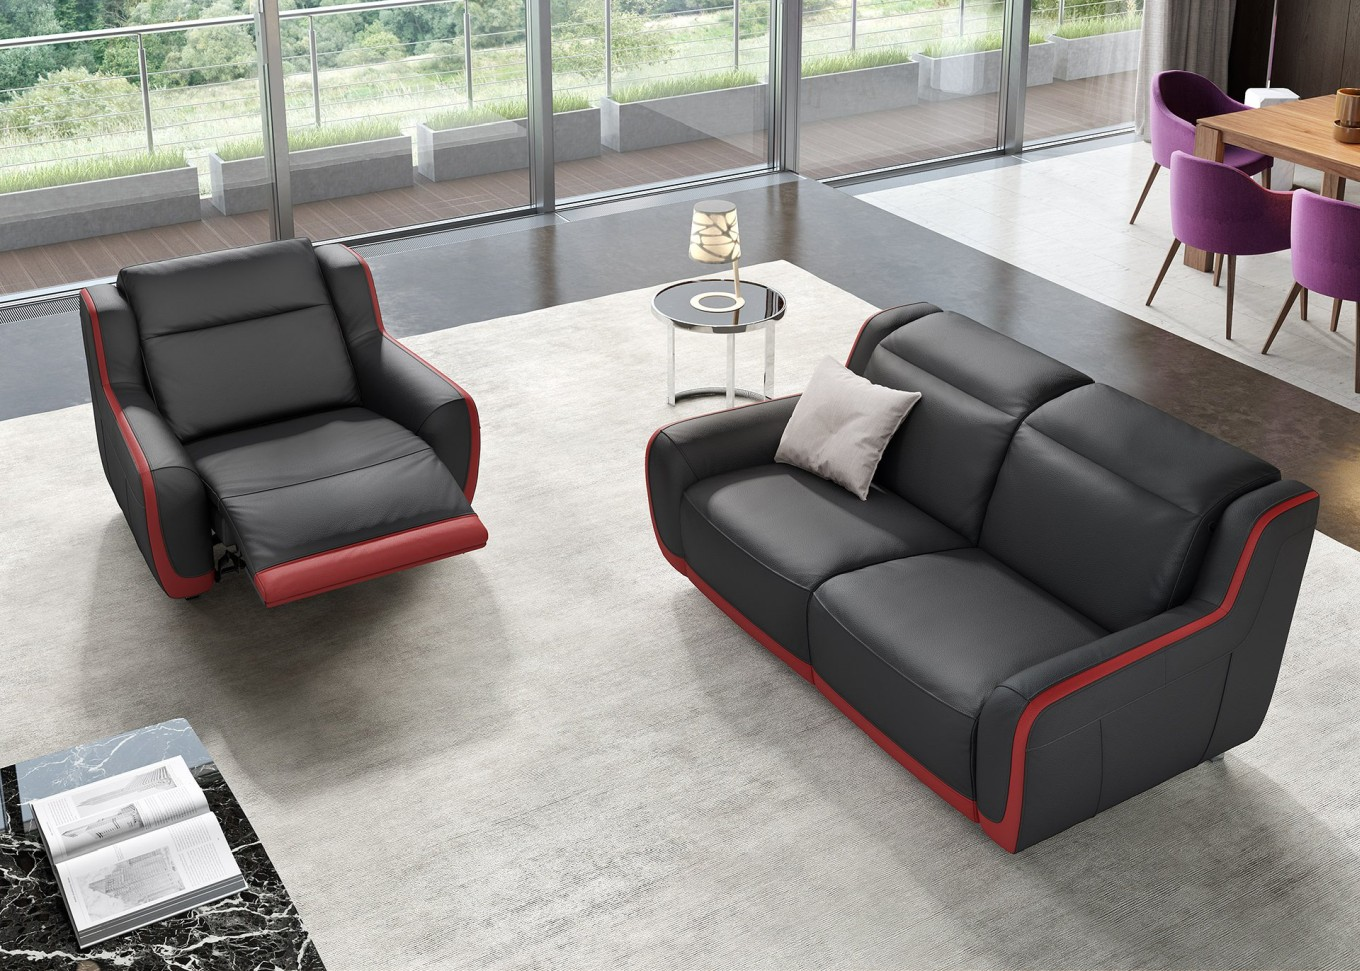 relax leder sofa garnitur tv sessel couch garnitur wohnlandschaft 2 sitzer 2er ebay. Black Bedroom Furniture Sets. Home Design Ideas